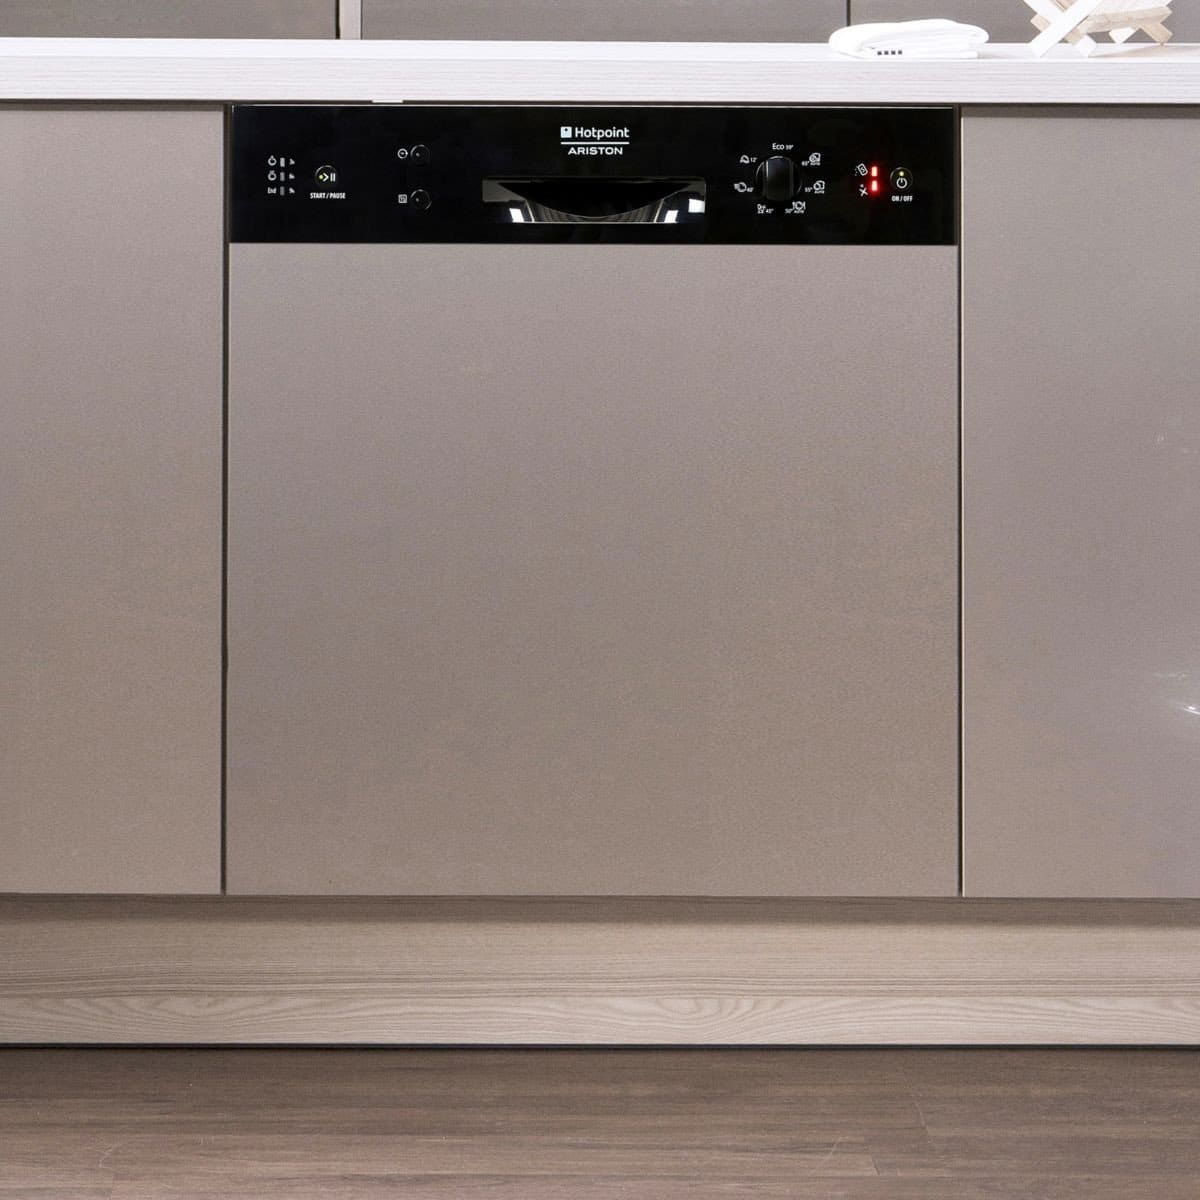 avis lave vaisselle hotpoint test comparatif. Black Bedroom Furniture Sets. Home Design Ideas